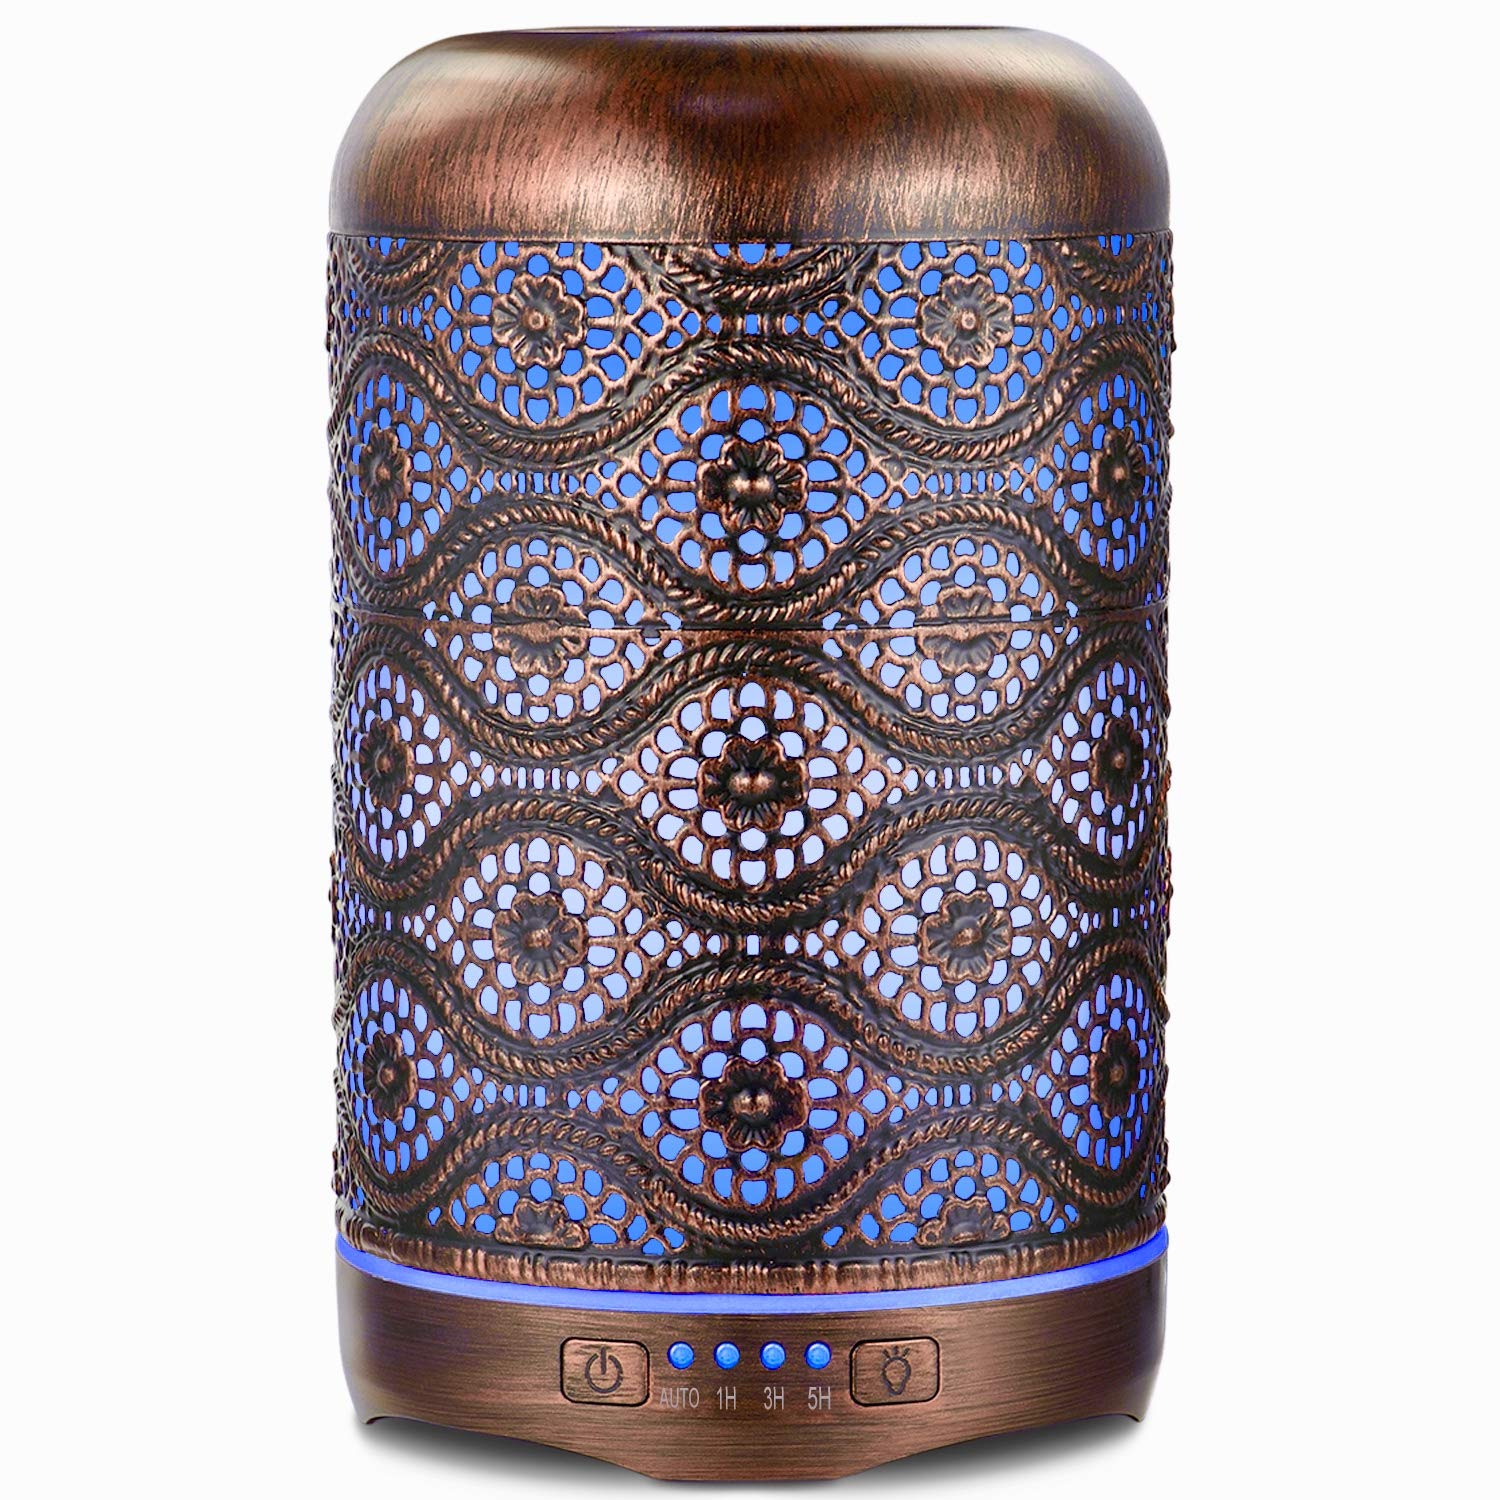 Ultrasonic Essential Oil Diffuser, ARVIDSSON Metal Aromatherapy Diffusers for Essential Oils, 260ml Cool Mist Humidifier, 7 Colors Changing Light & Whisper-quiet